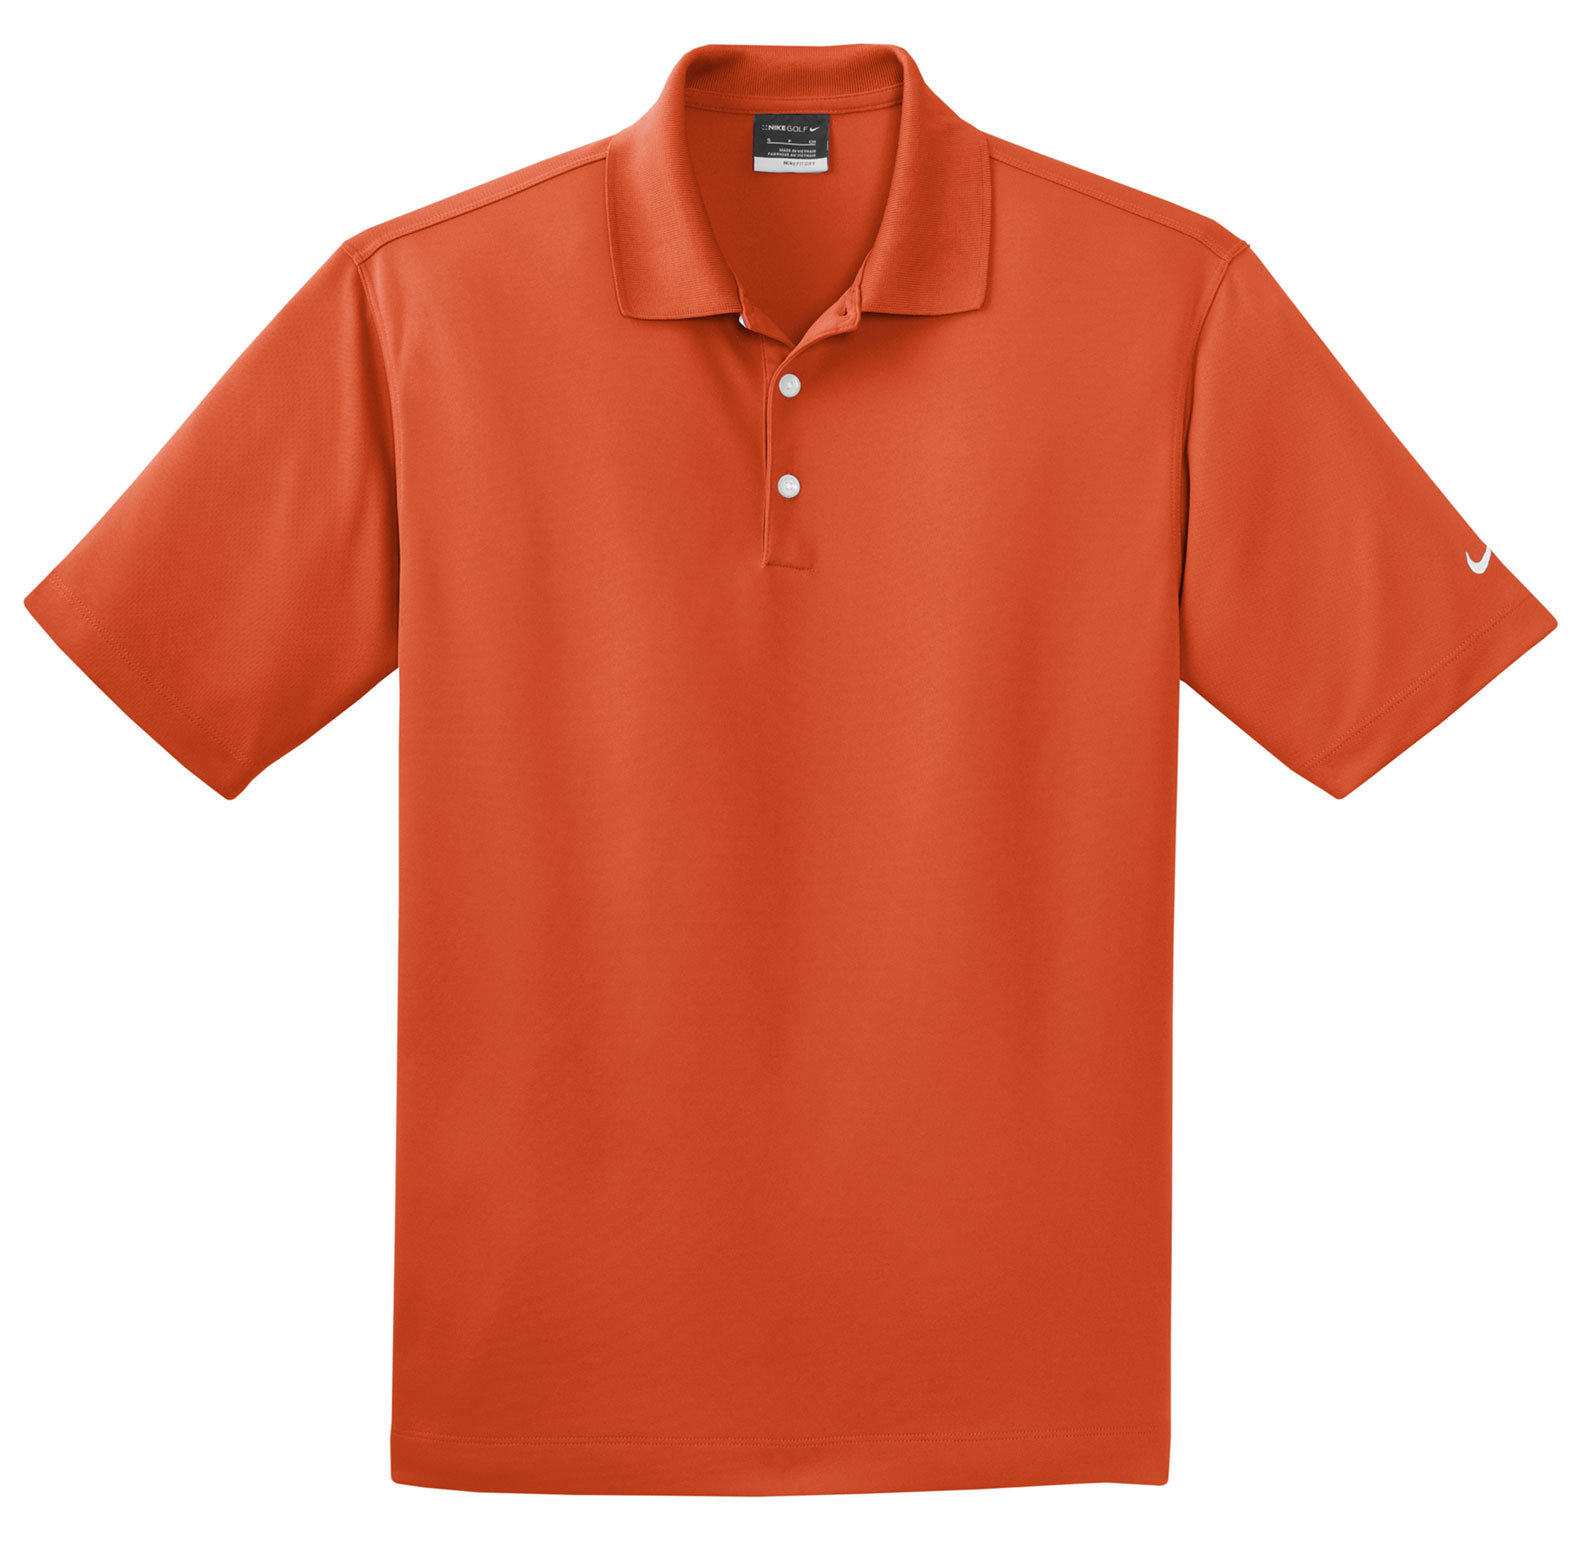 Nike Golf Mens Tall Dri-FIT Micro Pique Polo